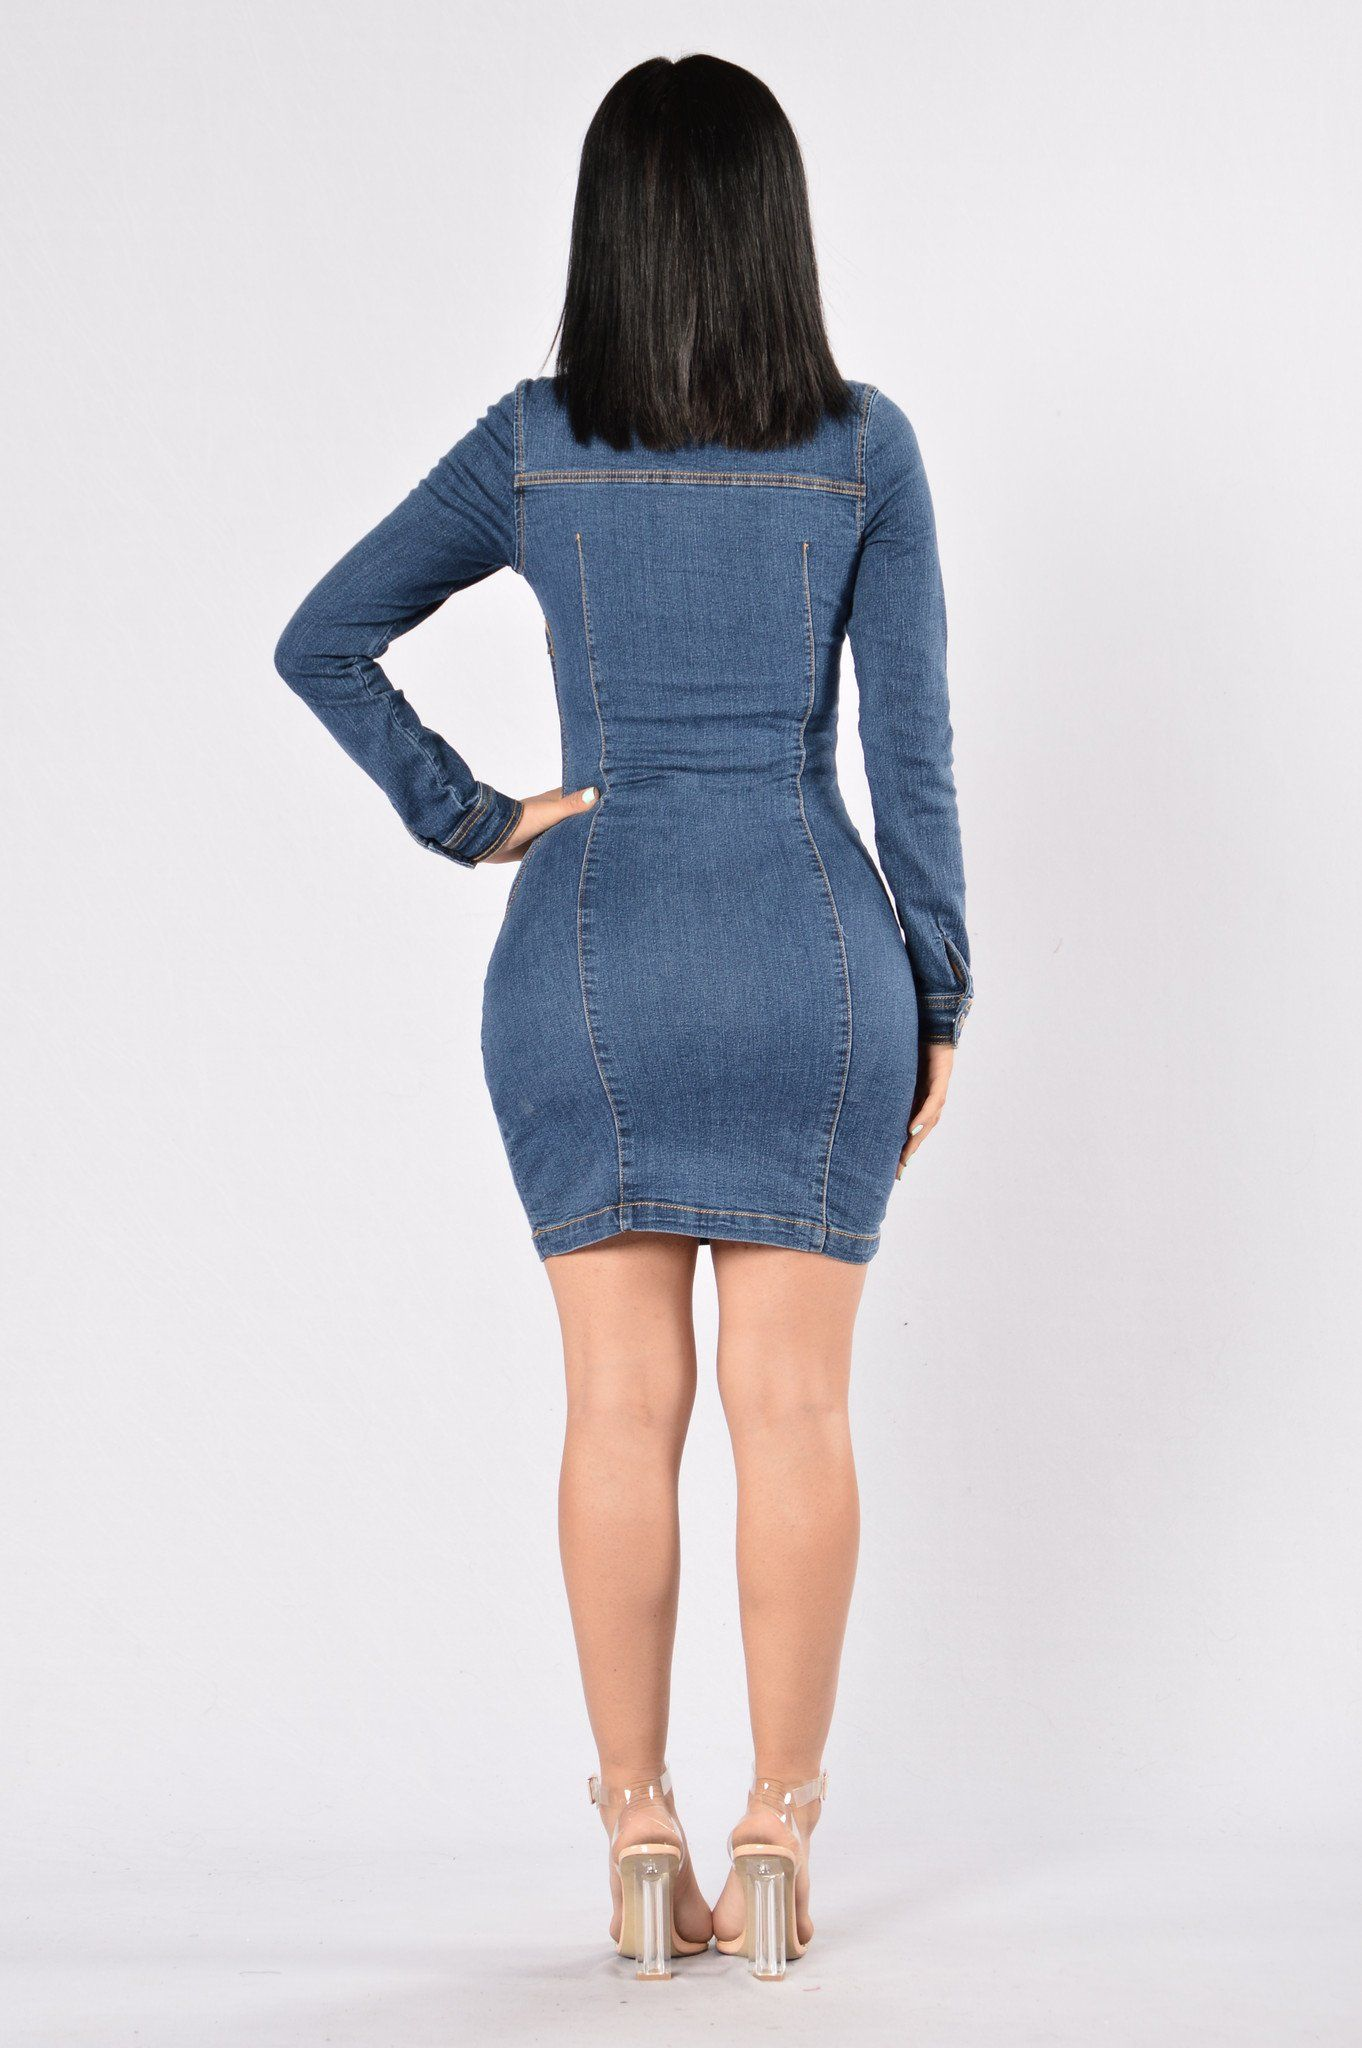 fe74437cbe Available in Dark Denim Lace Up Front Long Sleeve Form Fitting Side Zipper  84% Cotton